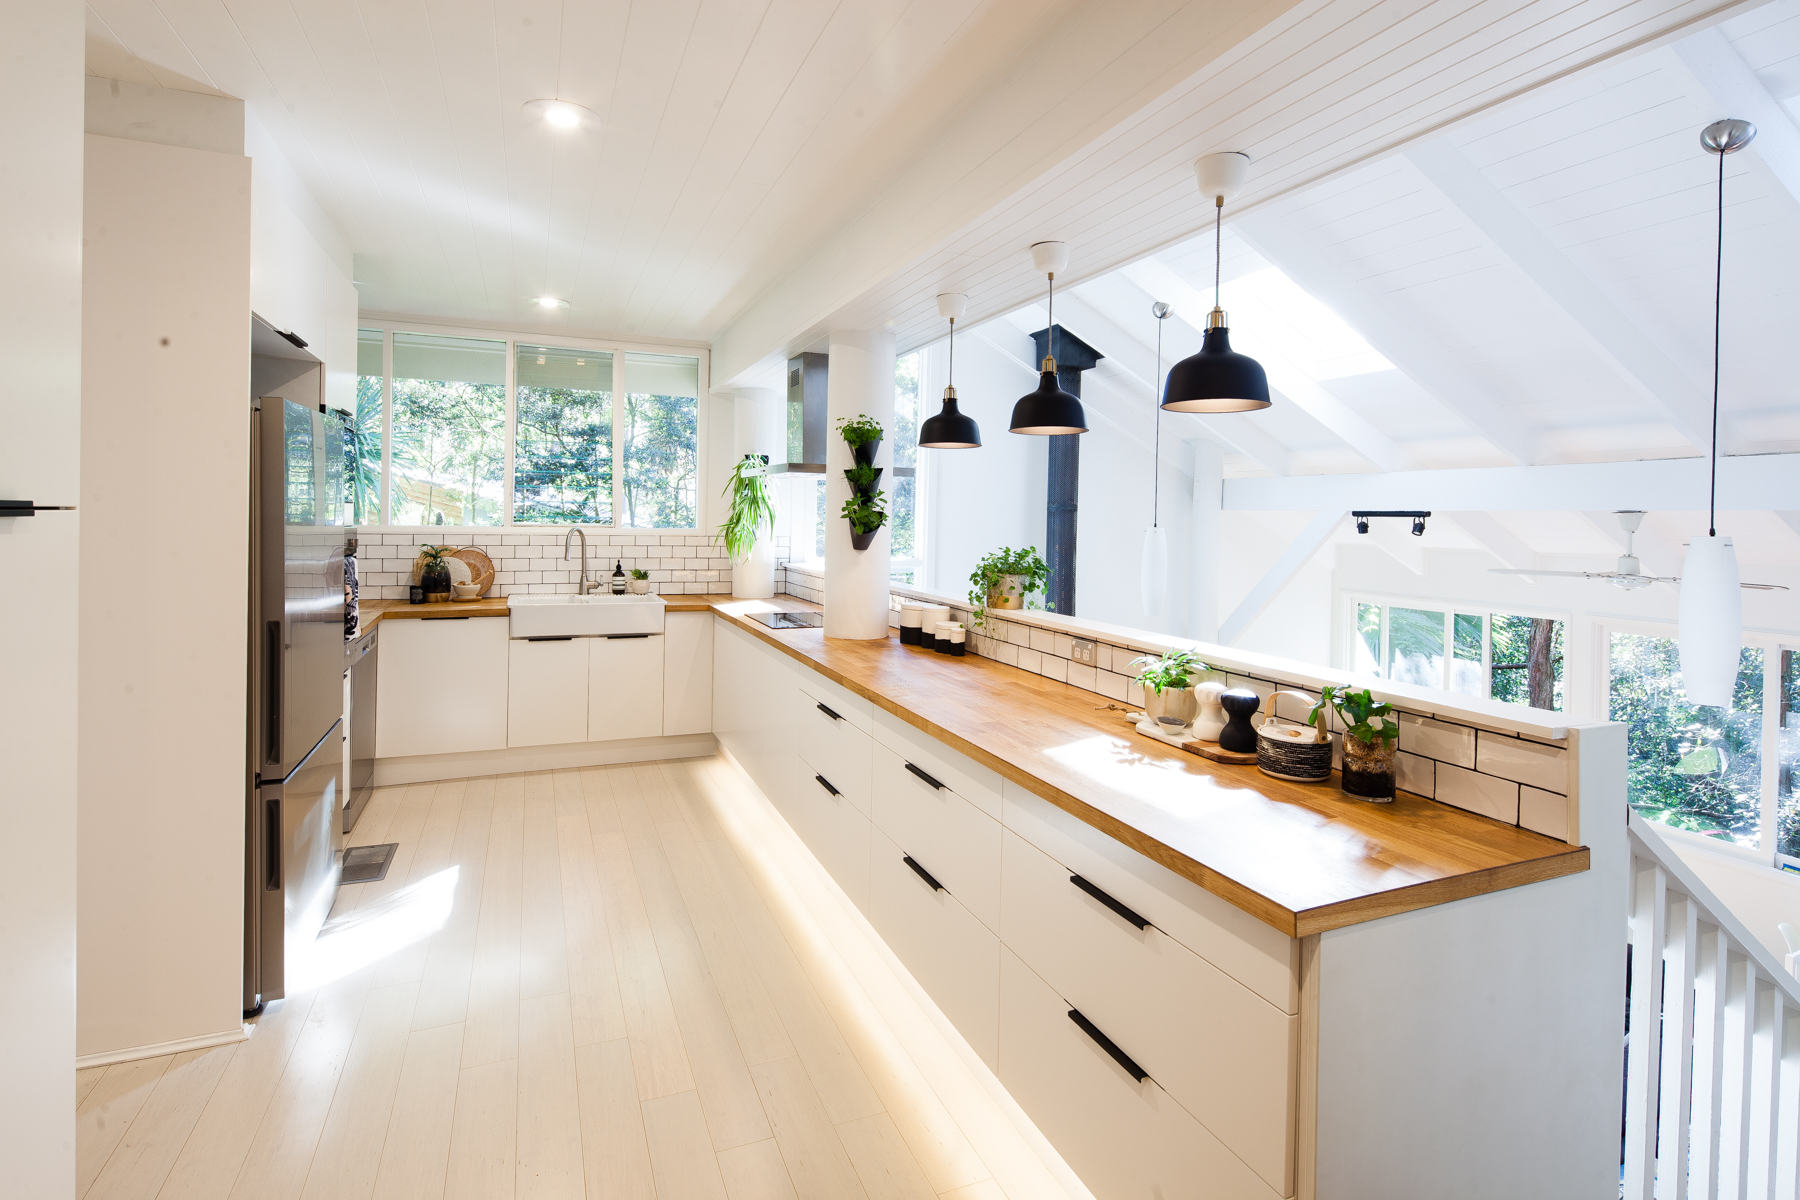 Kitchen Benchtops Hornsby A Sydney Blogger 39s Light Filled And Lovely Ikea Kitchen